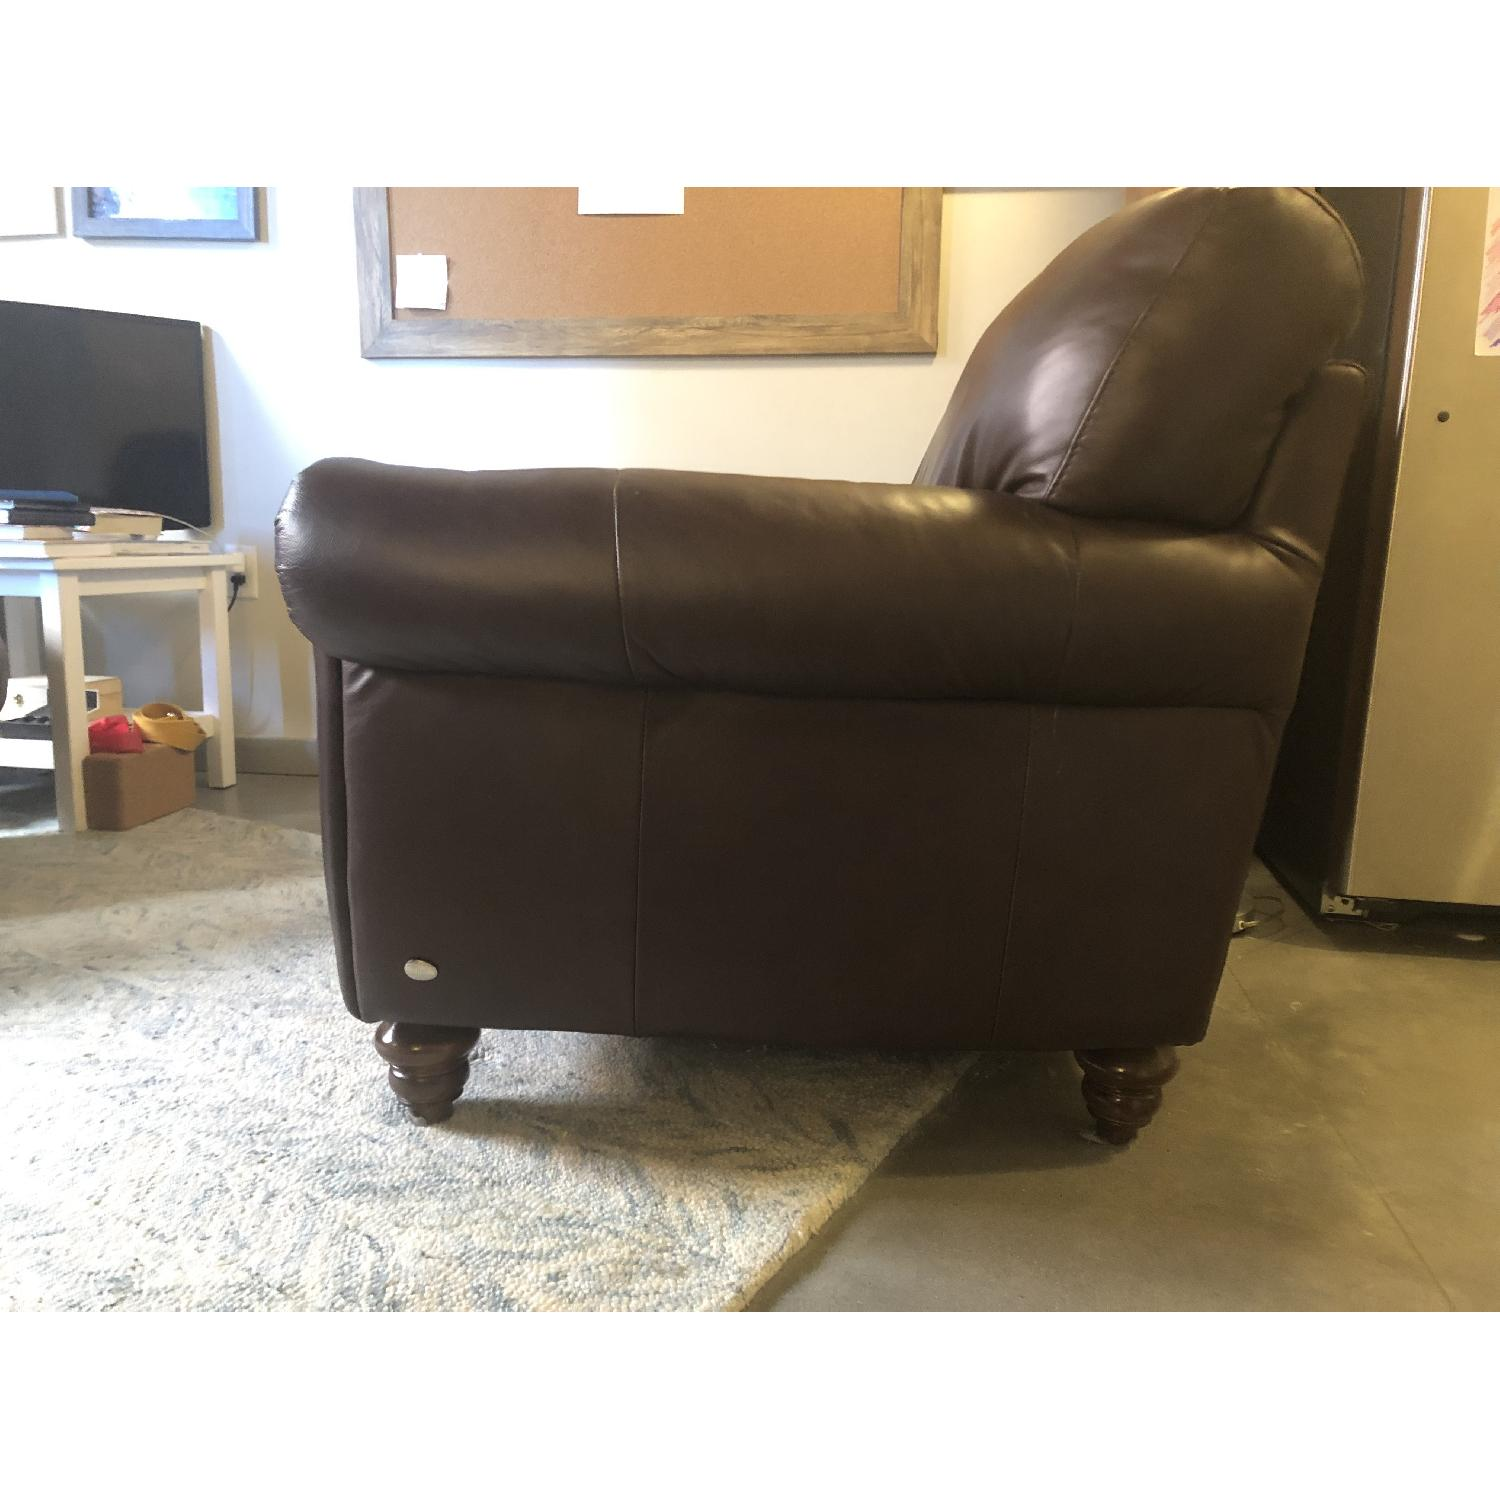 Macy's Italsofa Brown Leather Rolled Arm Loveseat & Ottoman - image-2